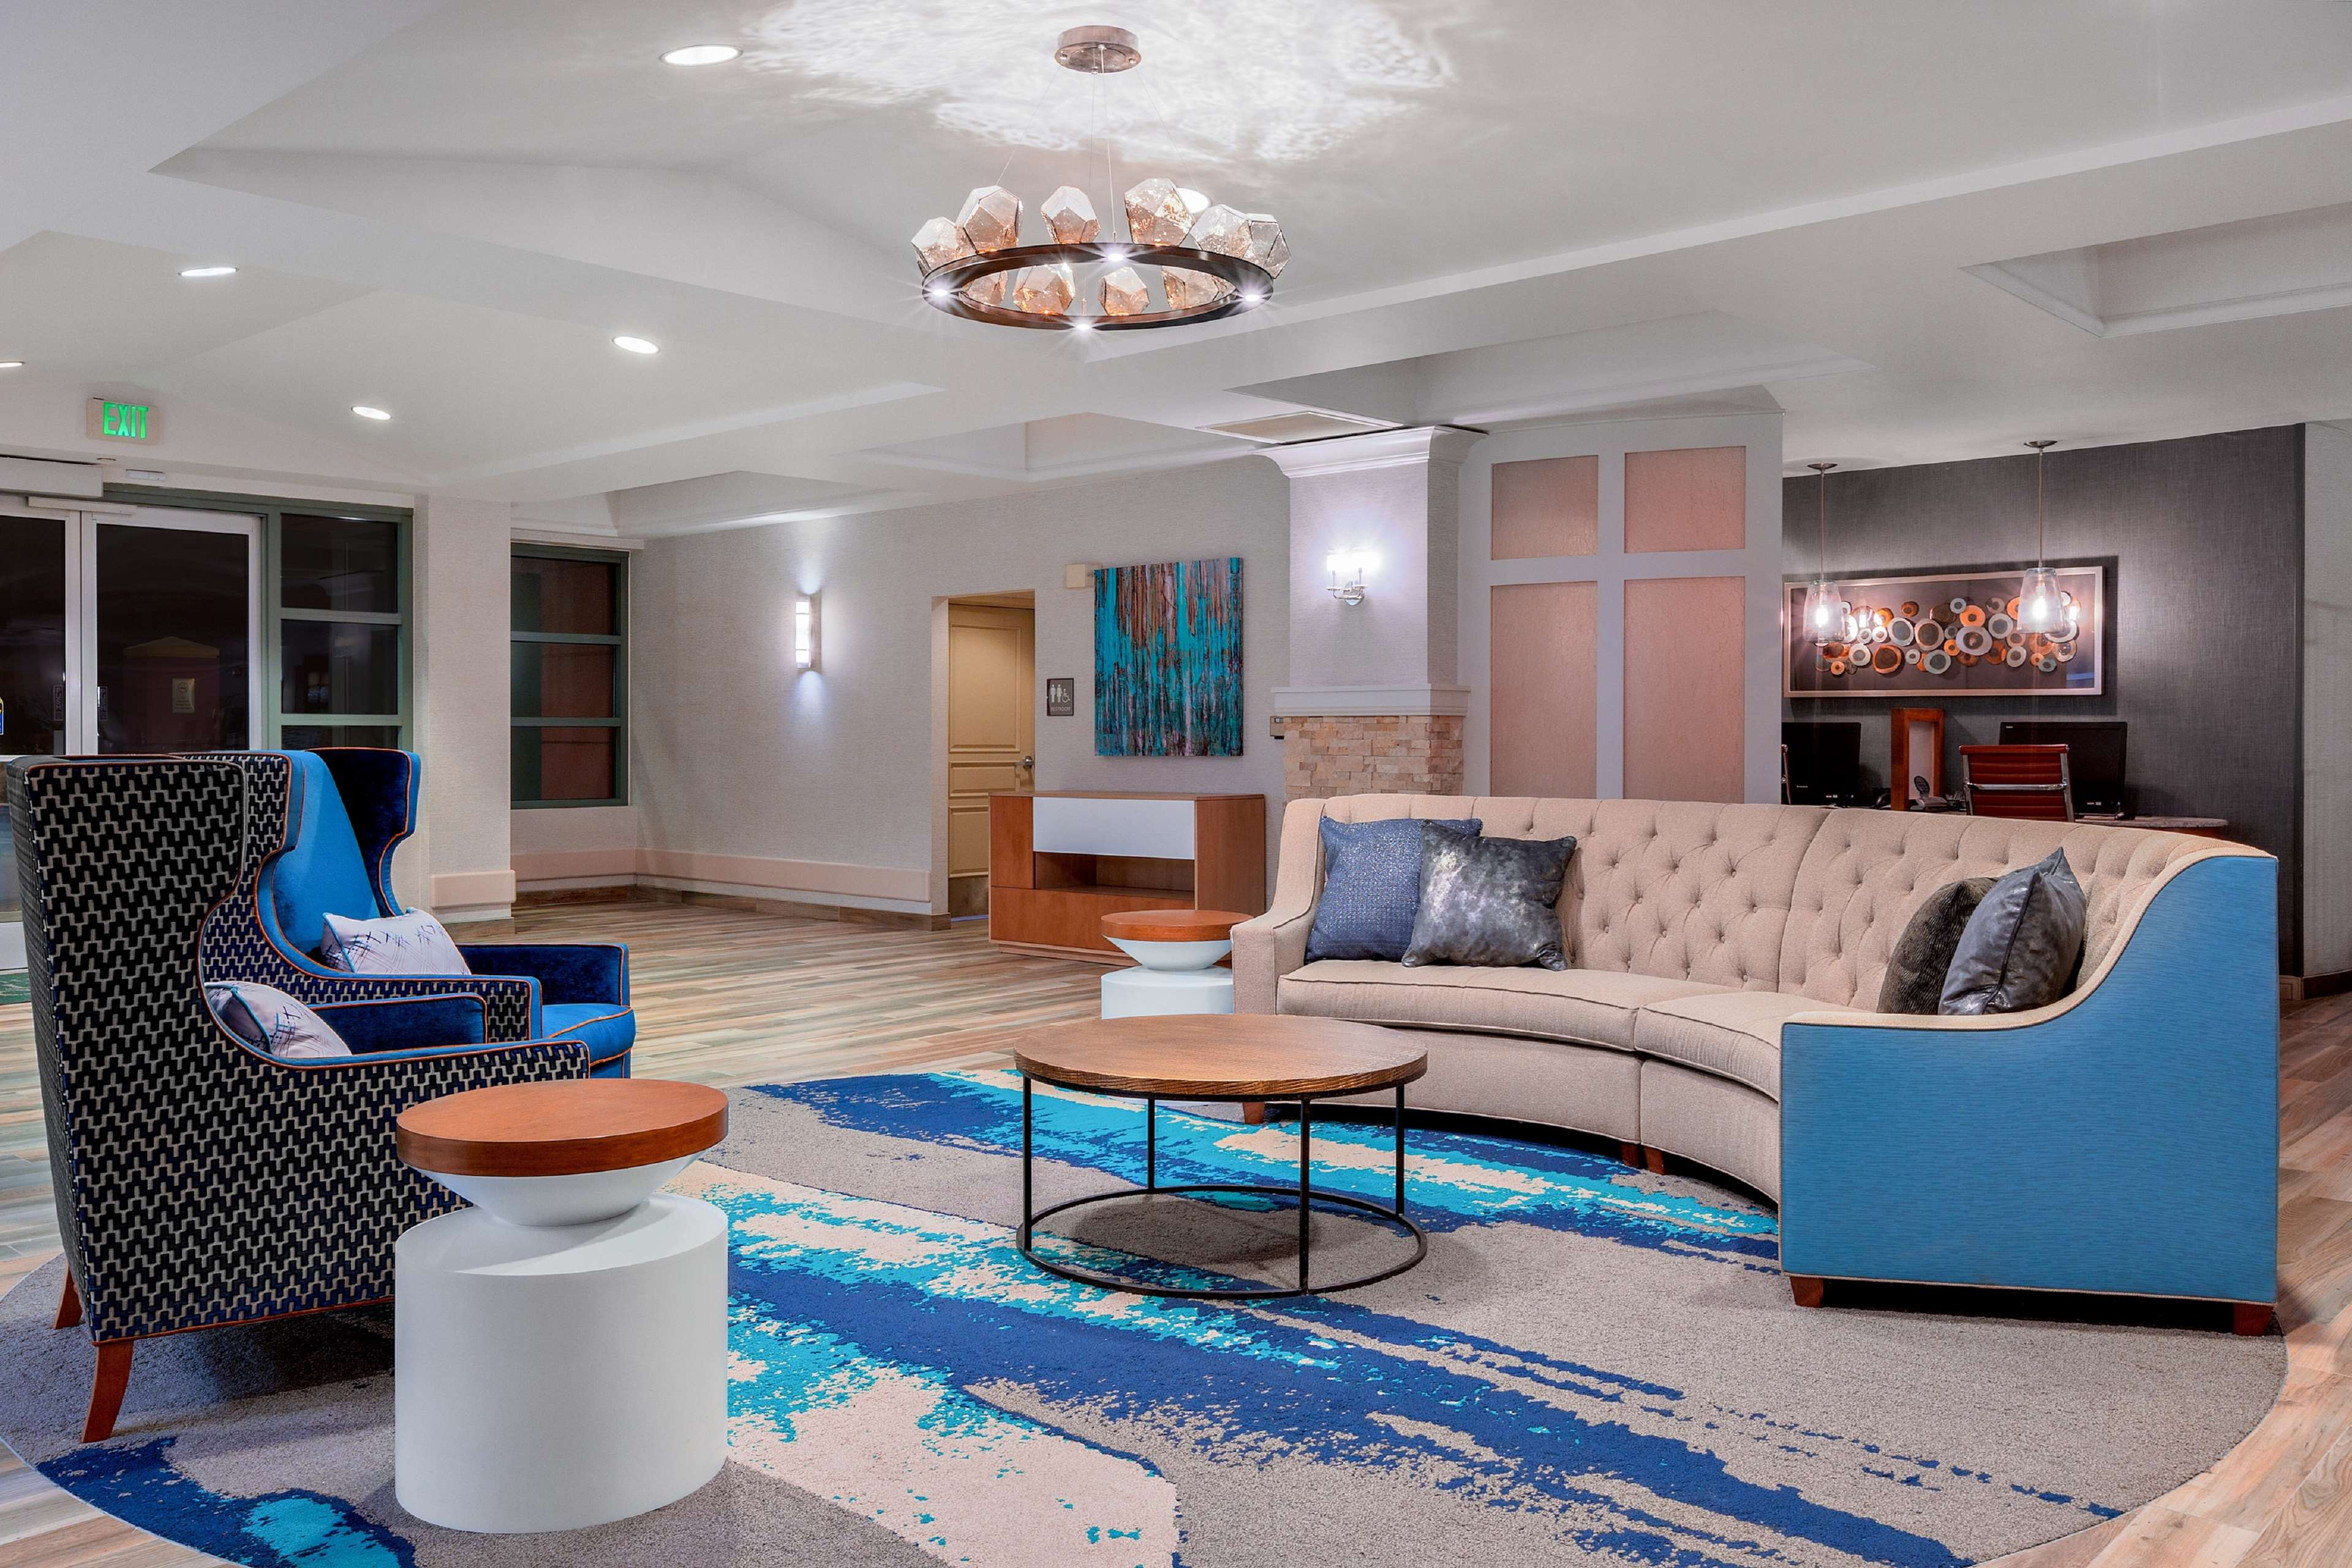 Homewood Suites by Hilton Seattle Downtown image 3